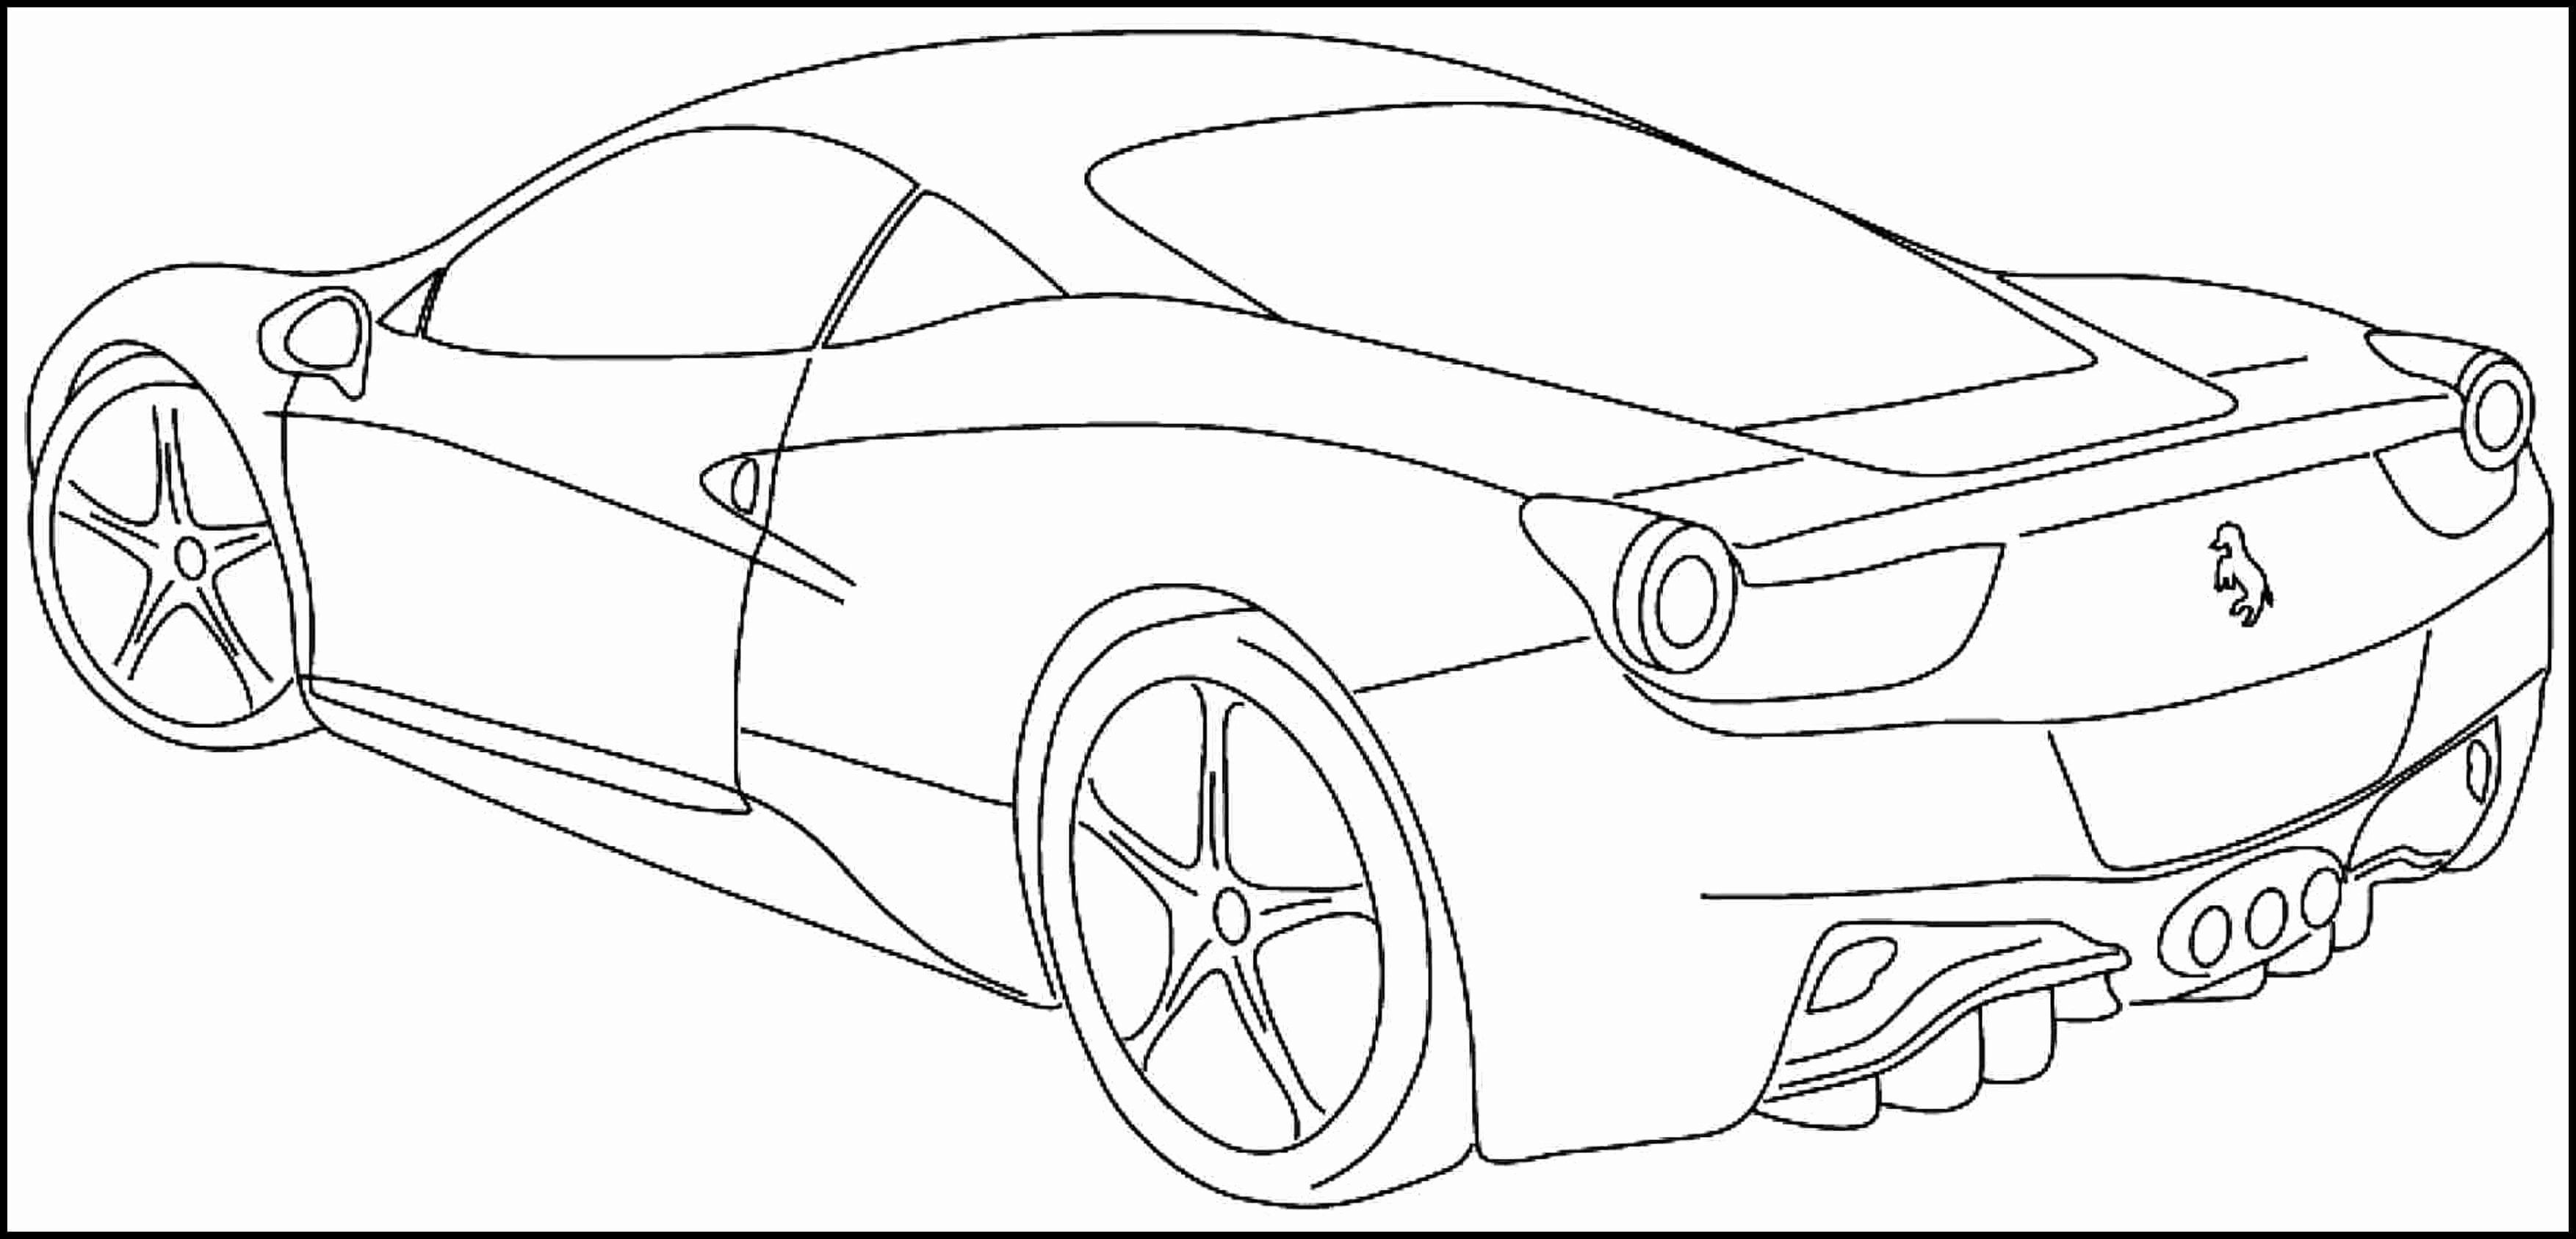 Sports Coloring Book Pdf Awesome Ferrari Enzo Car Coloring Pages Album Sabadaphnecottage Mobil Balap Mobil Warna